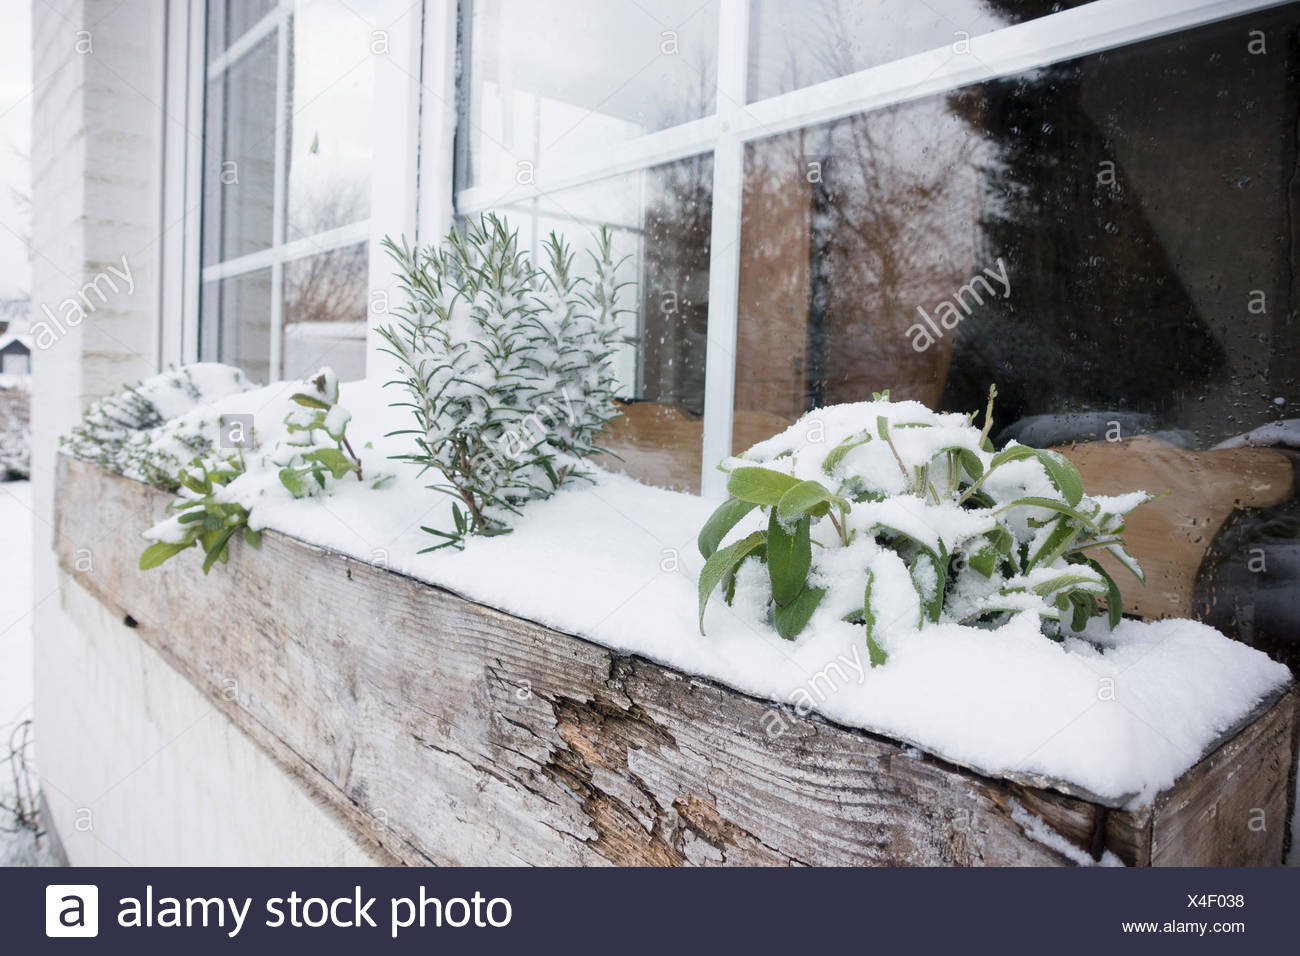 Herbs in the snow - Stock Image